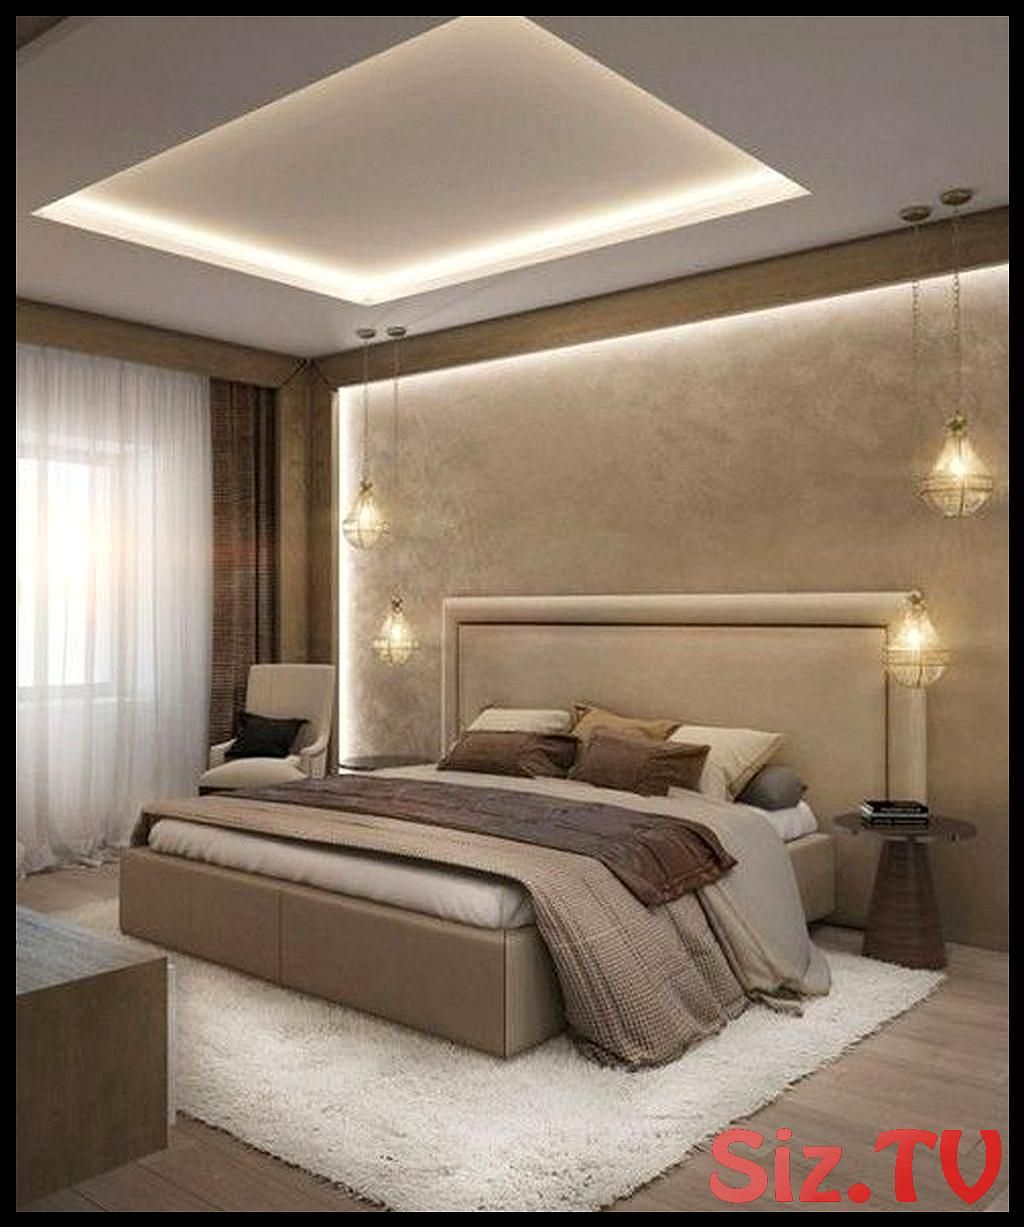 30 Popular Lighting Design Ideas For Bedroom Looks Beautiful 30 Popular Lighting Design Ideas For Bed Luxurious Bedrooms Luxury Furniture Detail Modern Bedroom